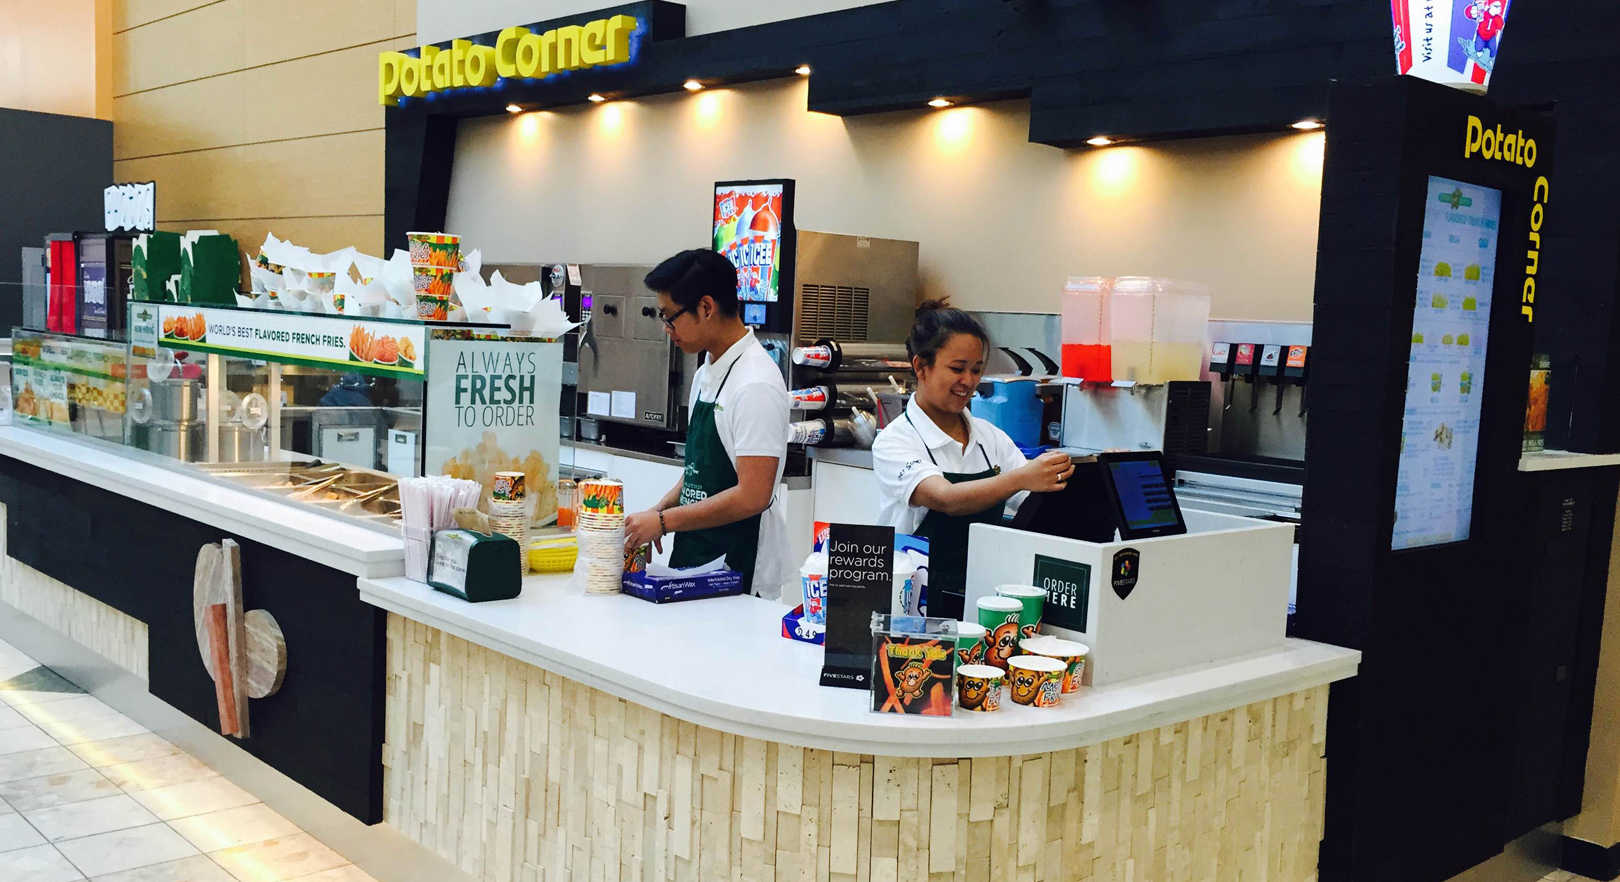 Potato Corner Franchise Thailand